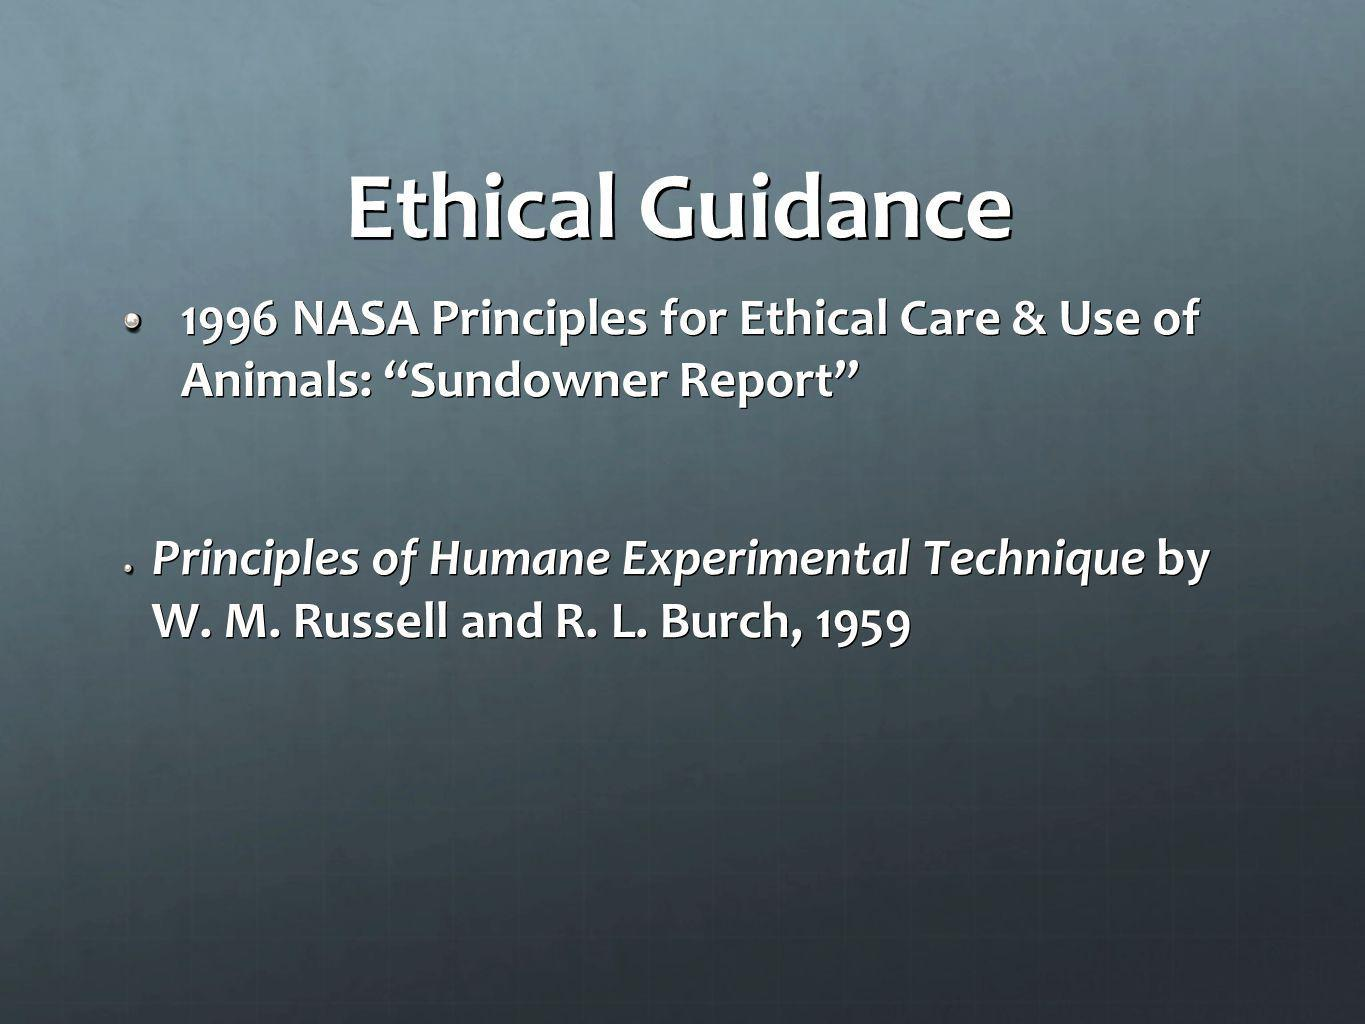 Ethical Guidance 1996 NASA Principles for Ethical Care & Use of Animals: Sundowner Report Principles of Humane Experimental Technique by W. M. Russell